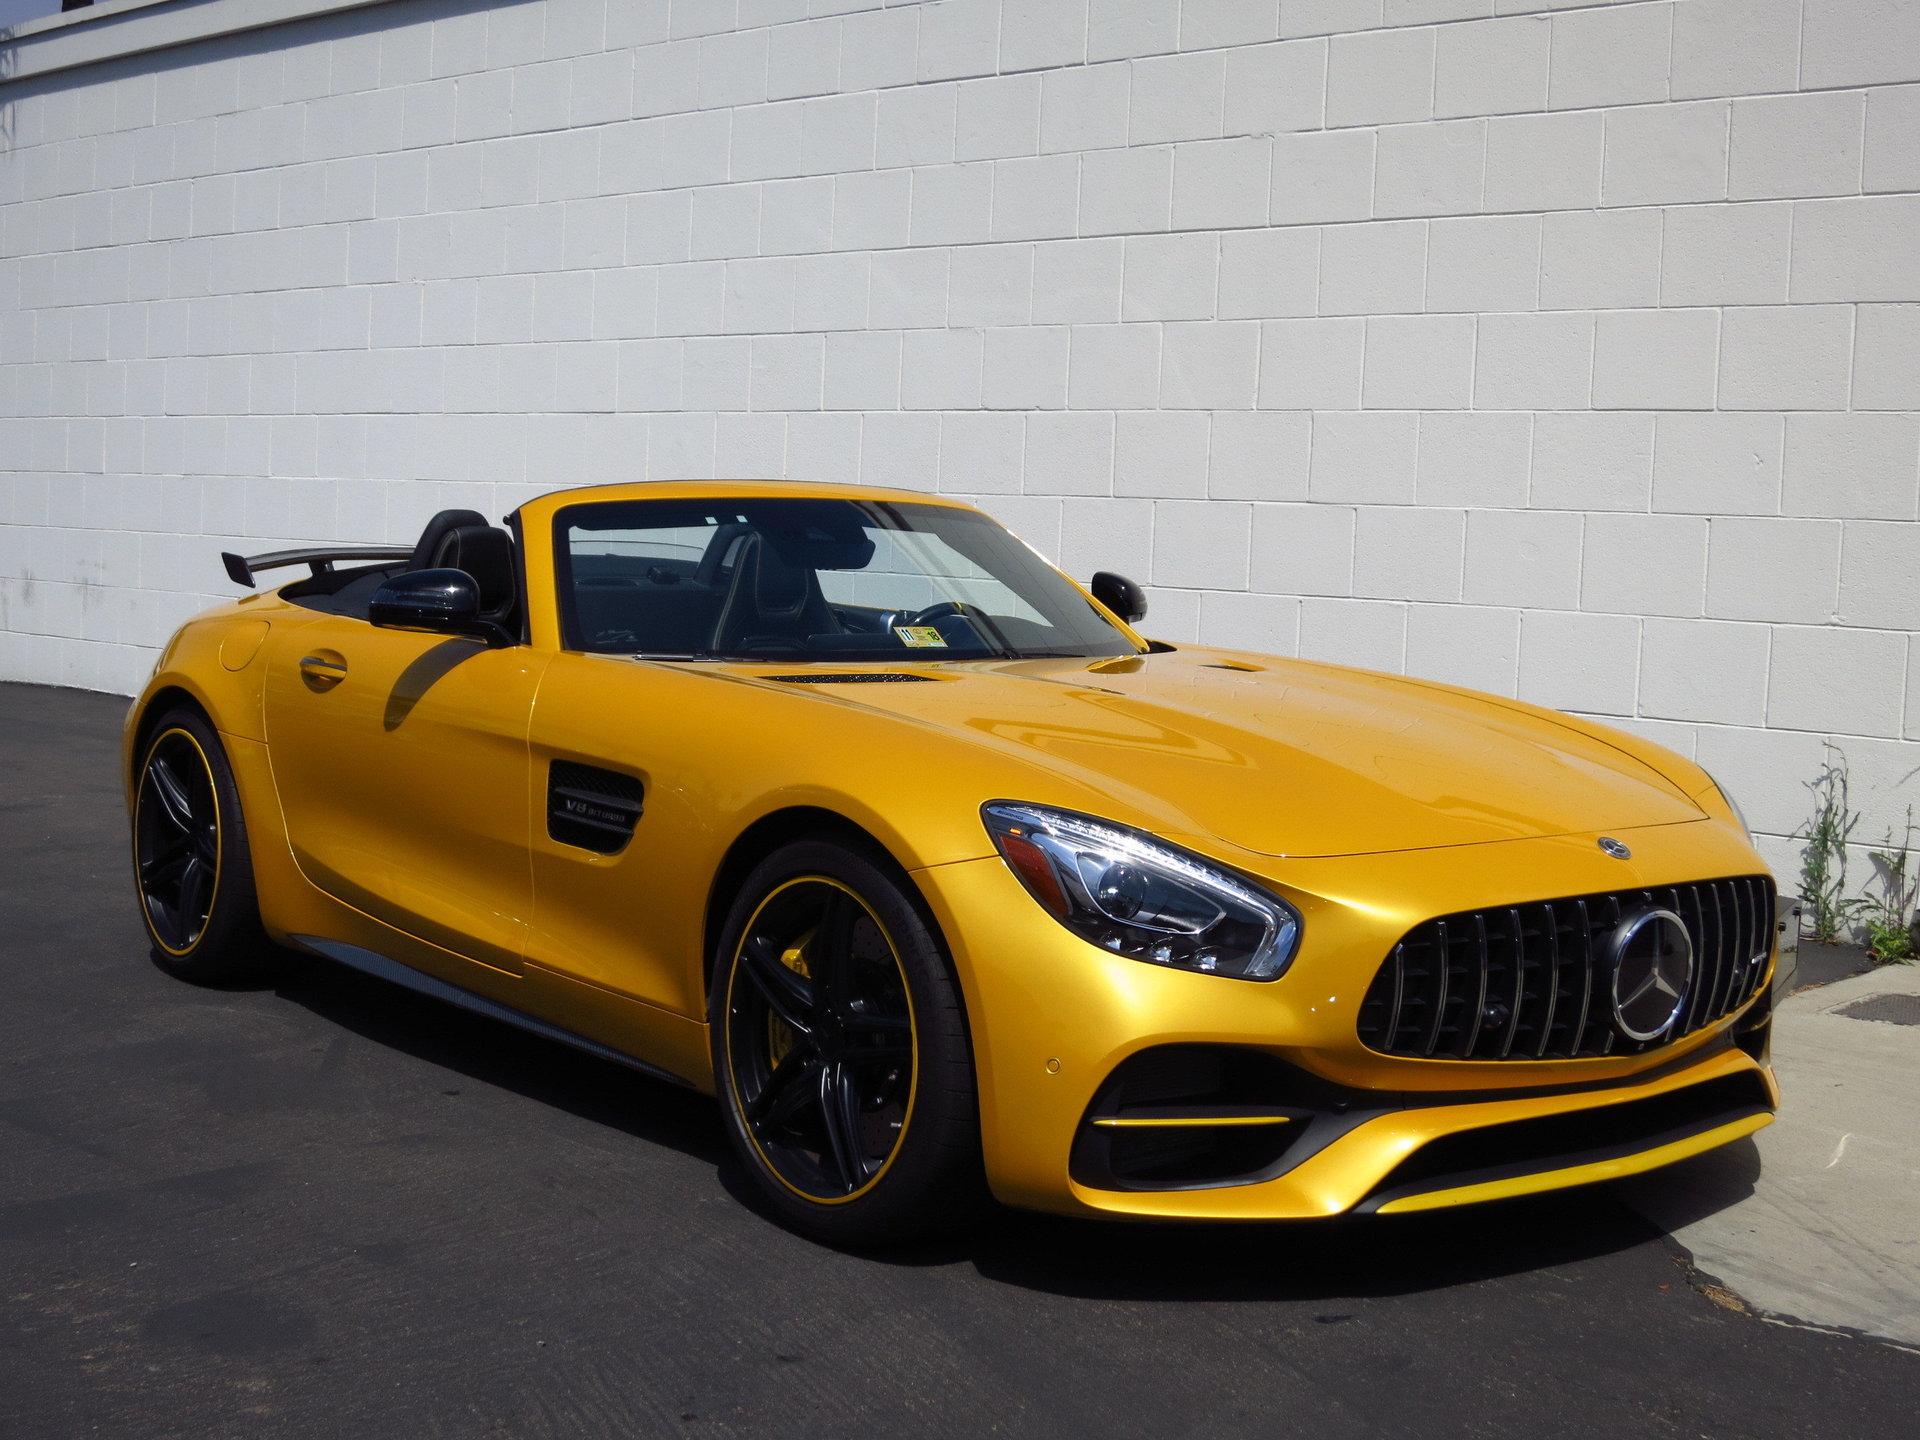 2018 Mercedes-Benz AMG GT-C Roadster for sale #91758 | MCG